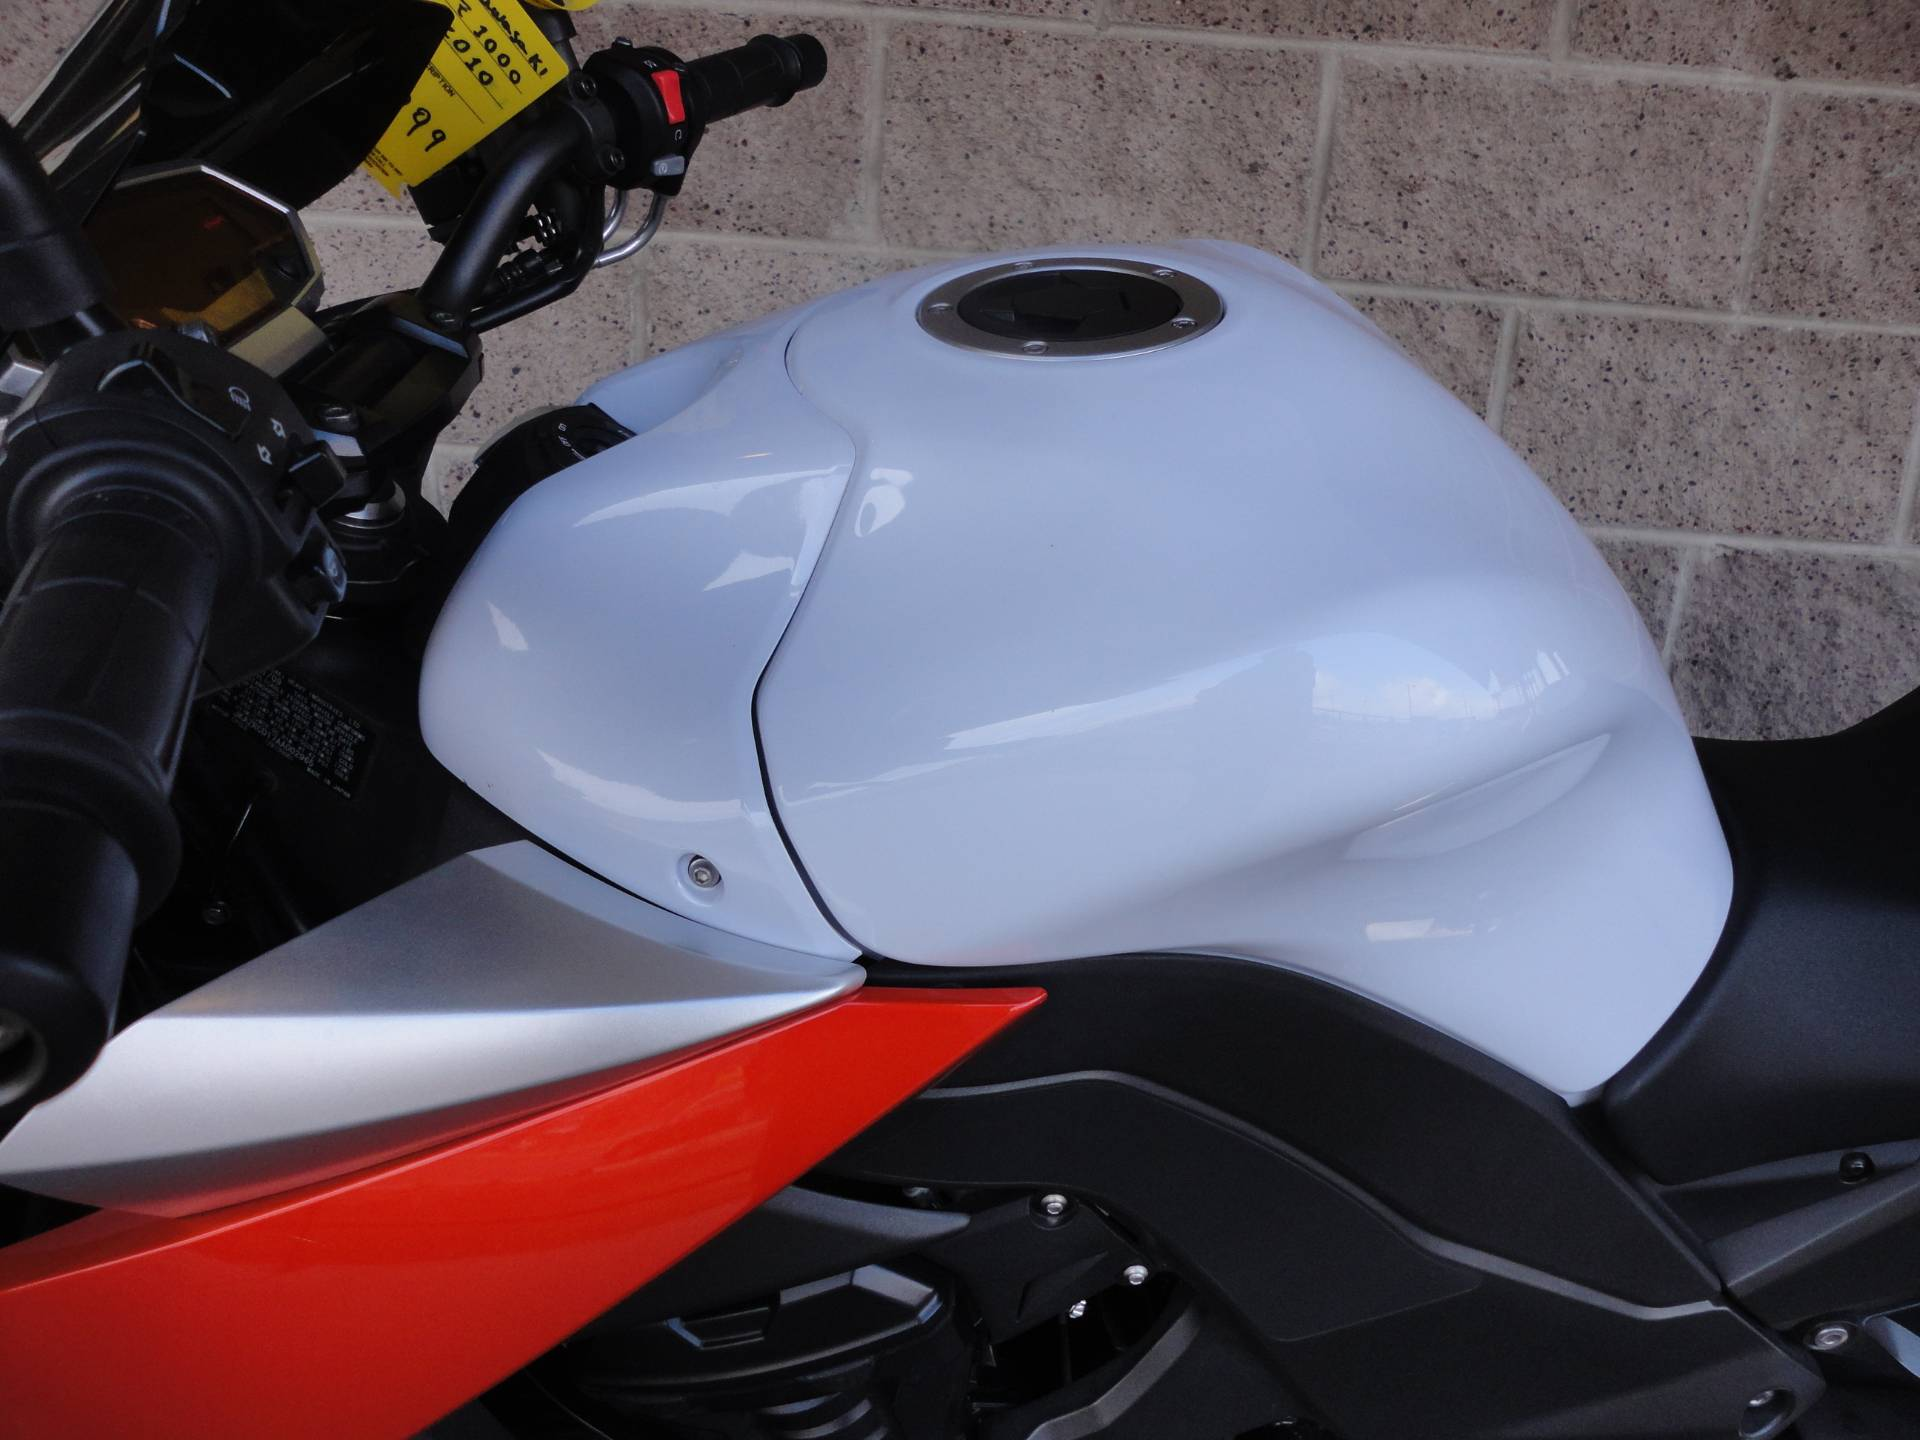 2010 Kawasaki Z1000 in Denver, Colorado